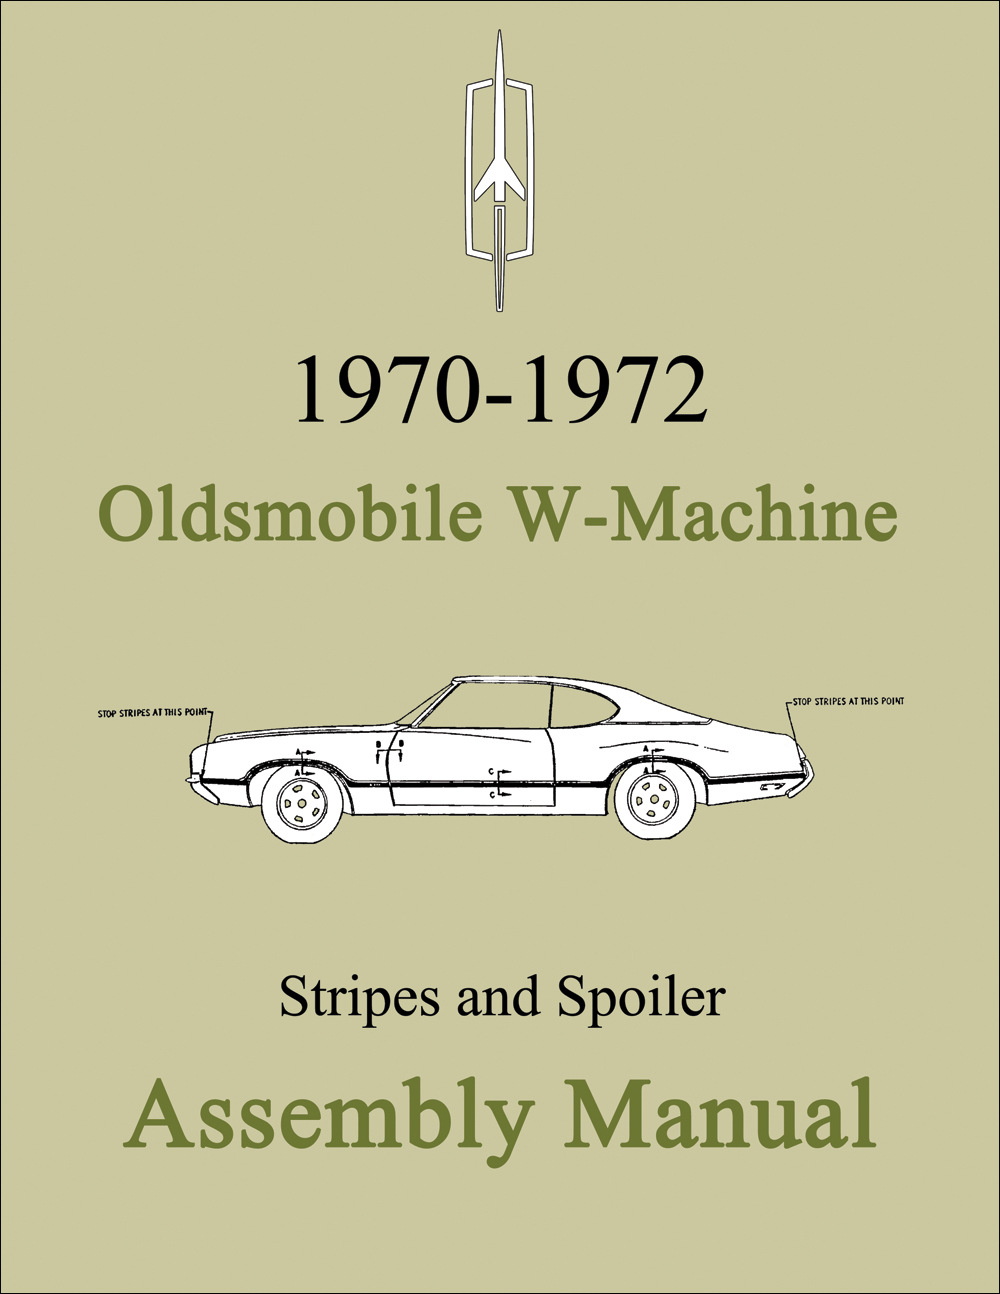 1970-1972 Oldsmobile W-Machine Assembly Manual Reprint Stripes and Spoiler